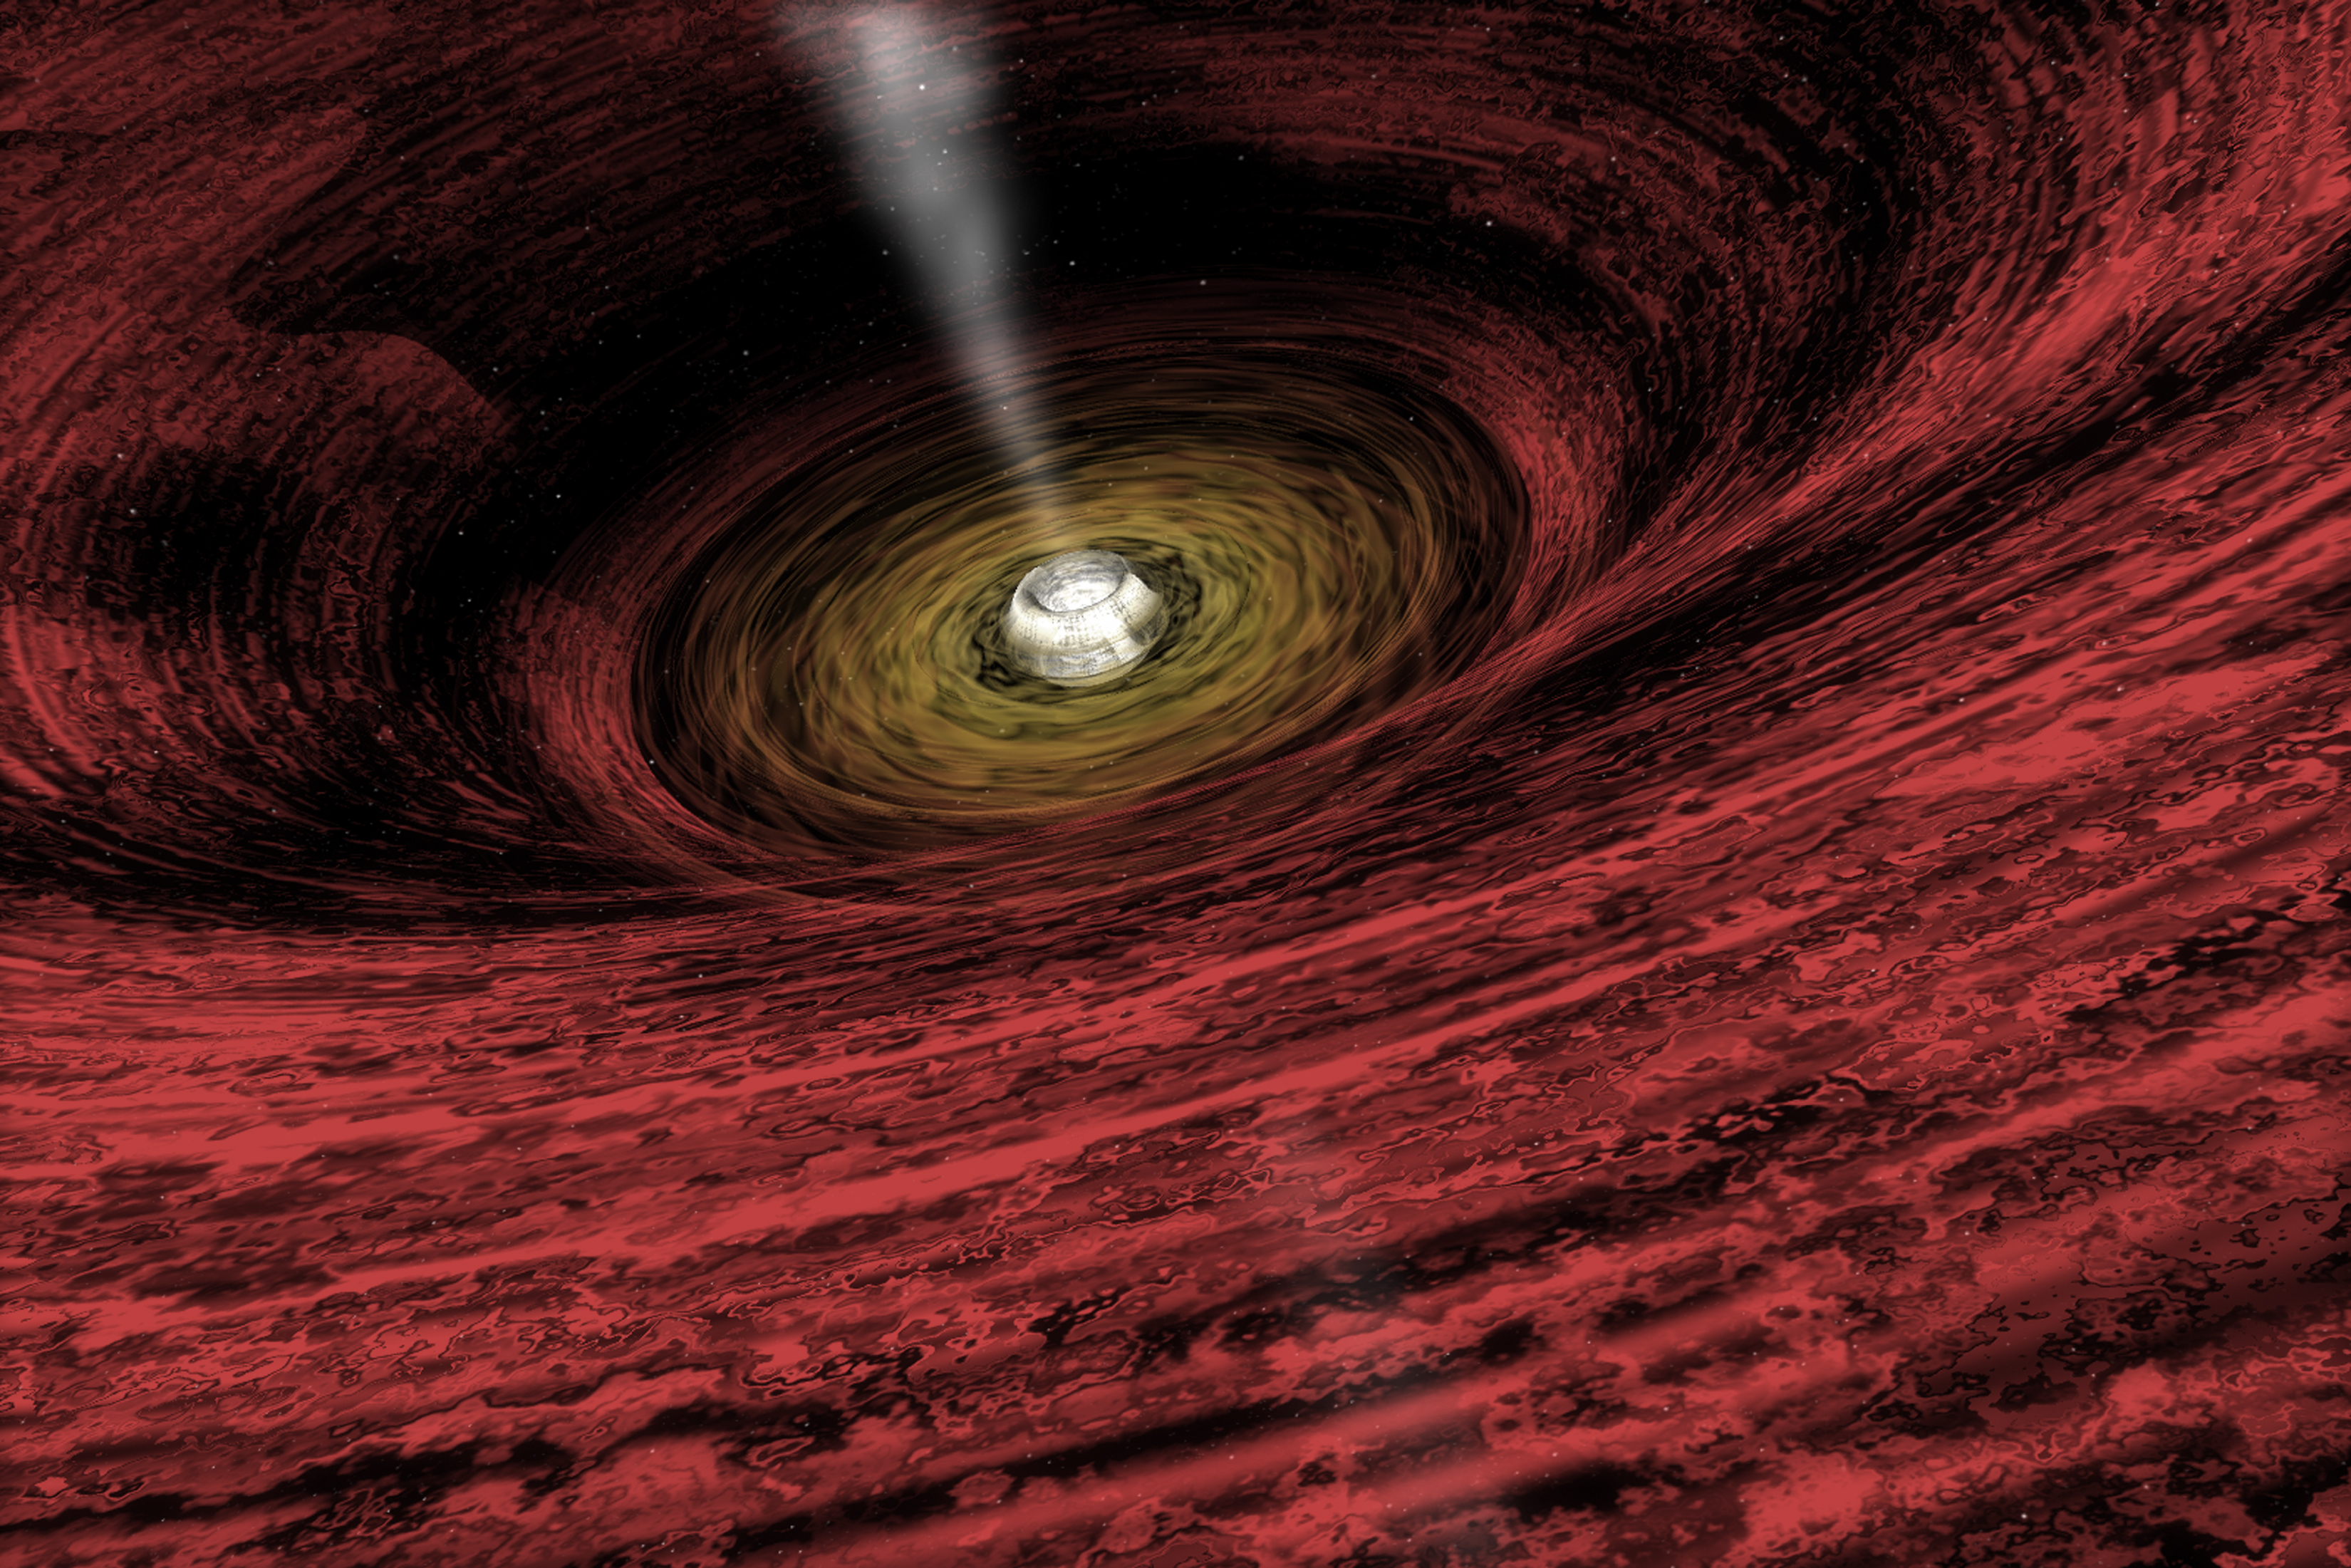 black hole chandra x ray - photo #34